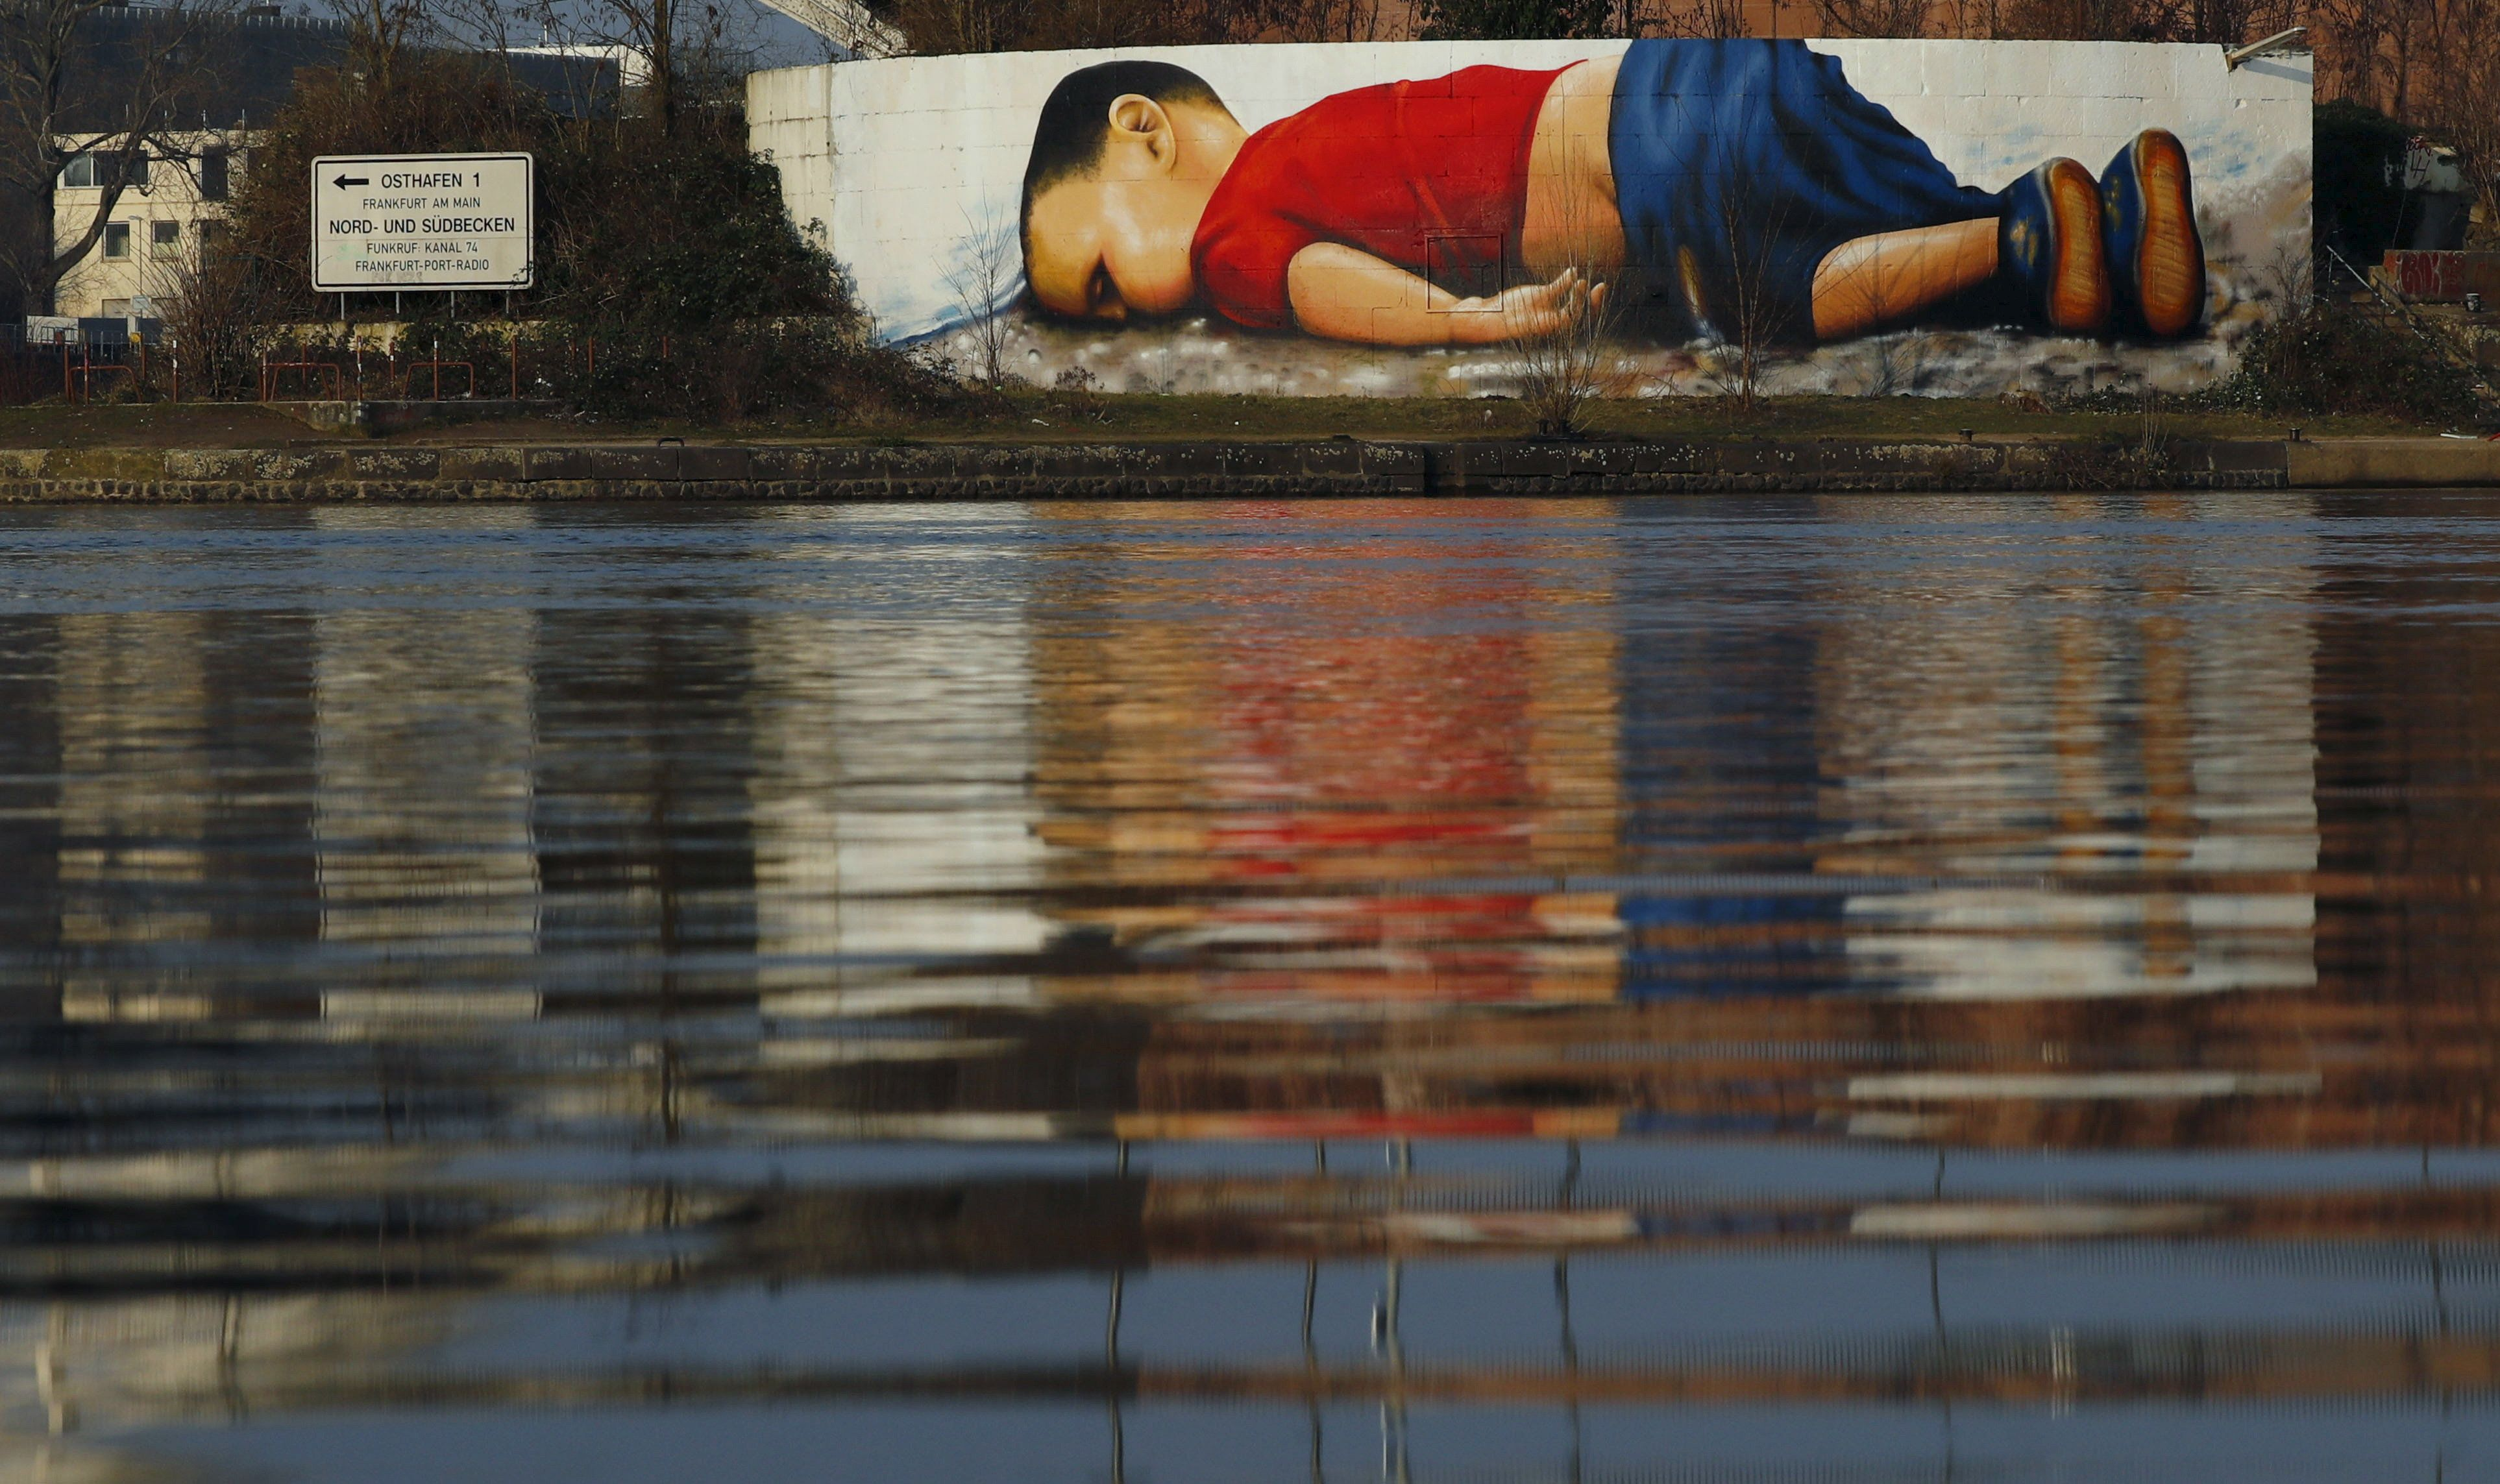 A huge mural painting showing Syrian tot Aylan Kurdi on the Main River in